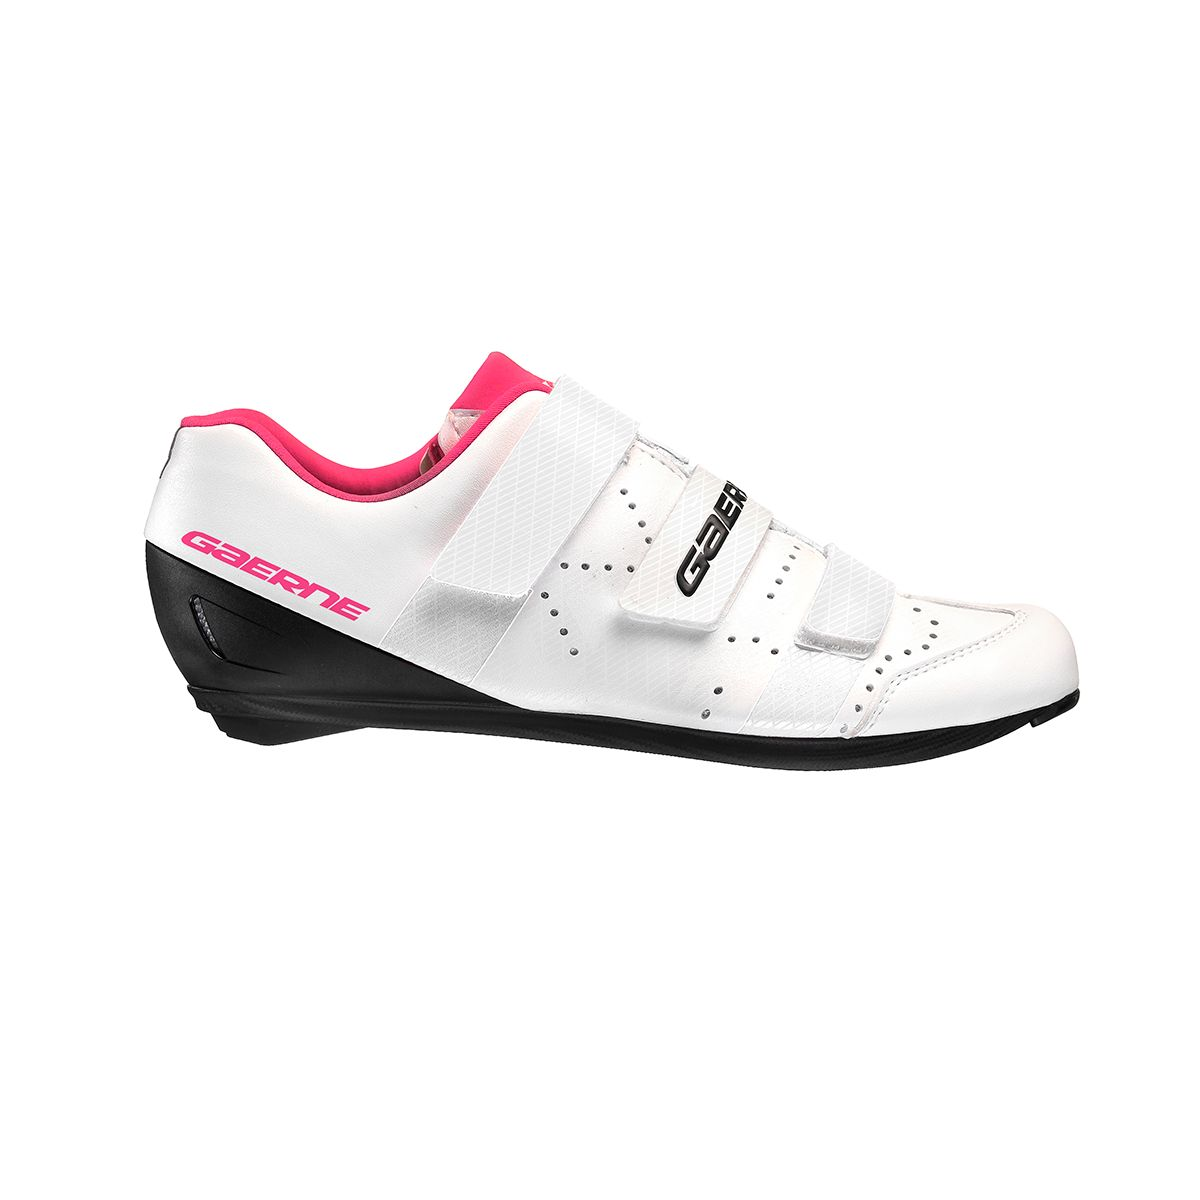 G.RECORD LADY Road Shoes